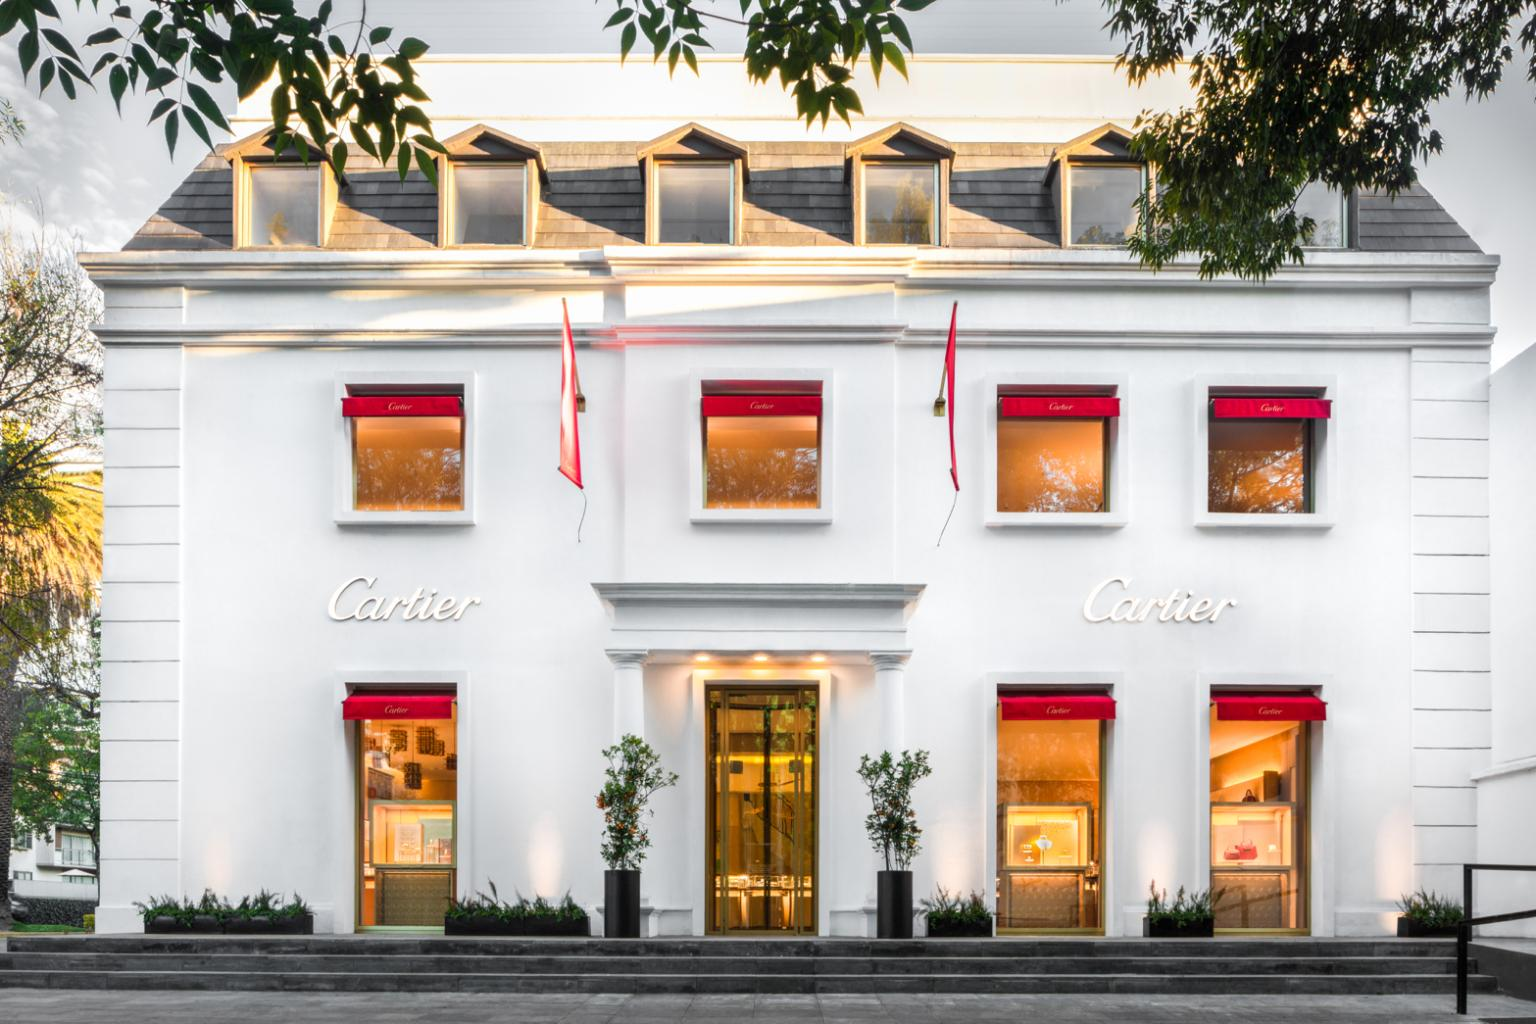 Cartier new store Mexico City at Masaryk